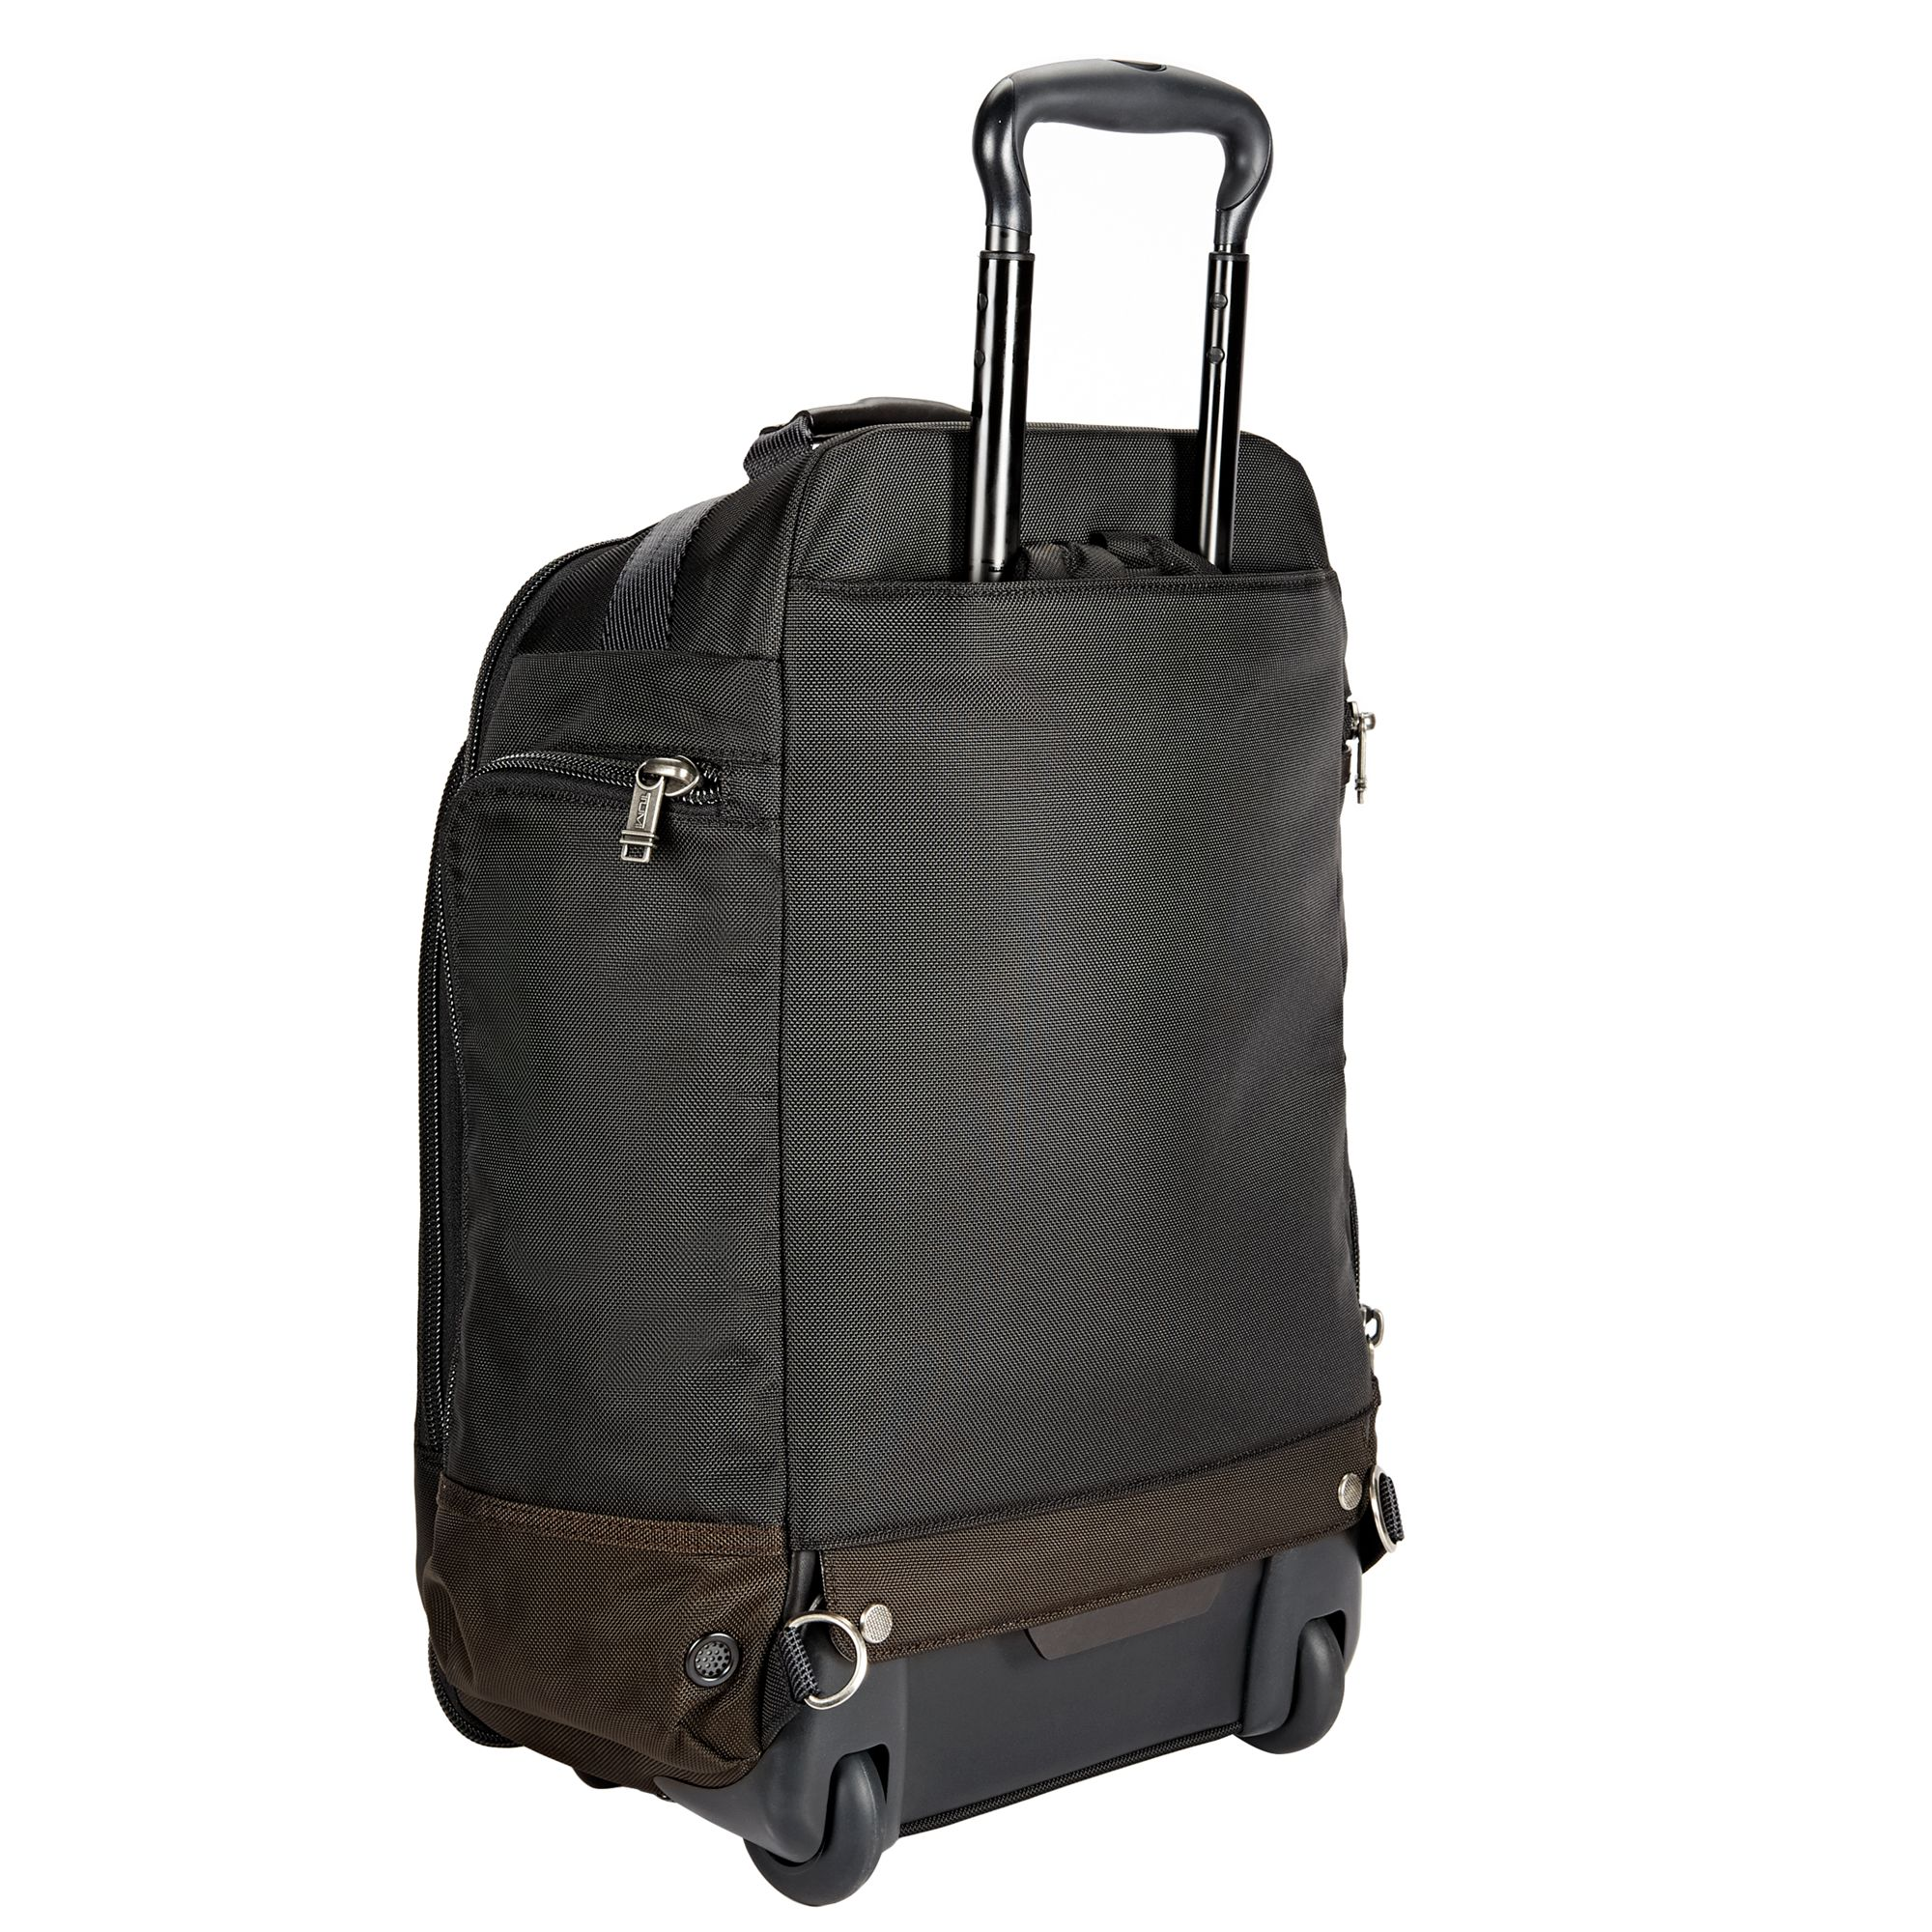 tumi alpha bravo peterson rucksack auf rollen hickory. Black Bedroom Furniture Sets. Home Design Ideas